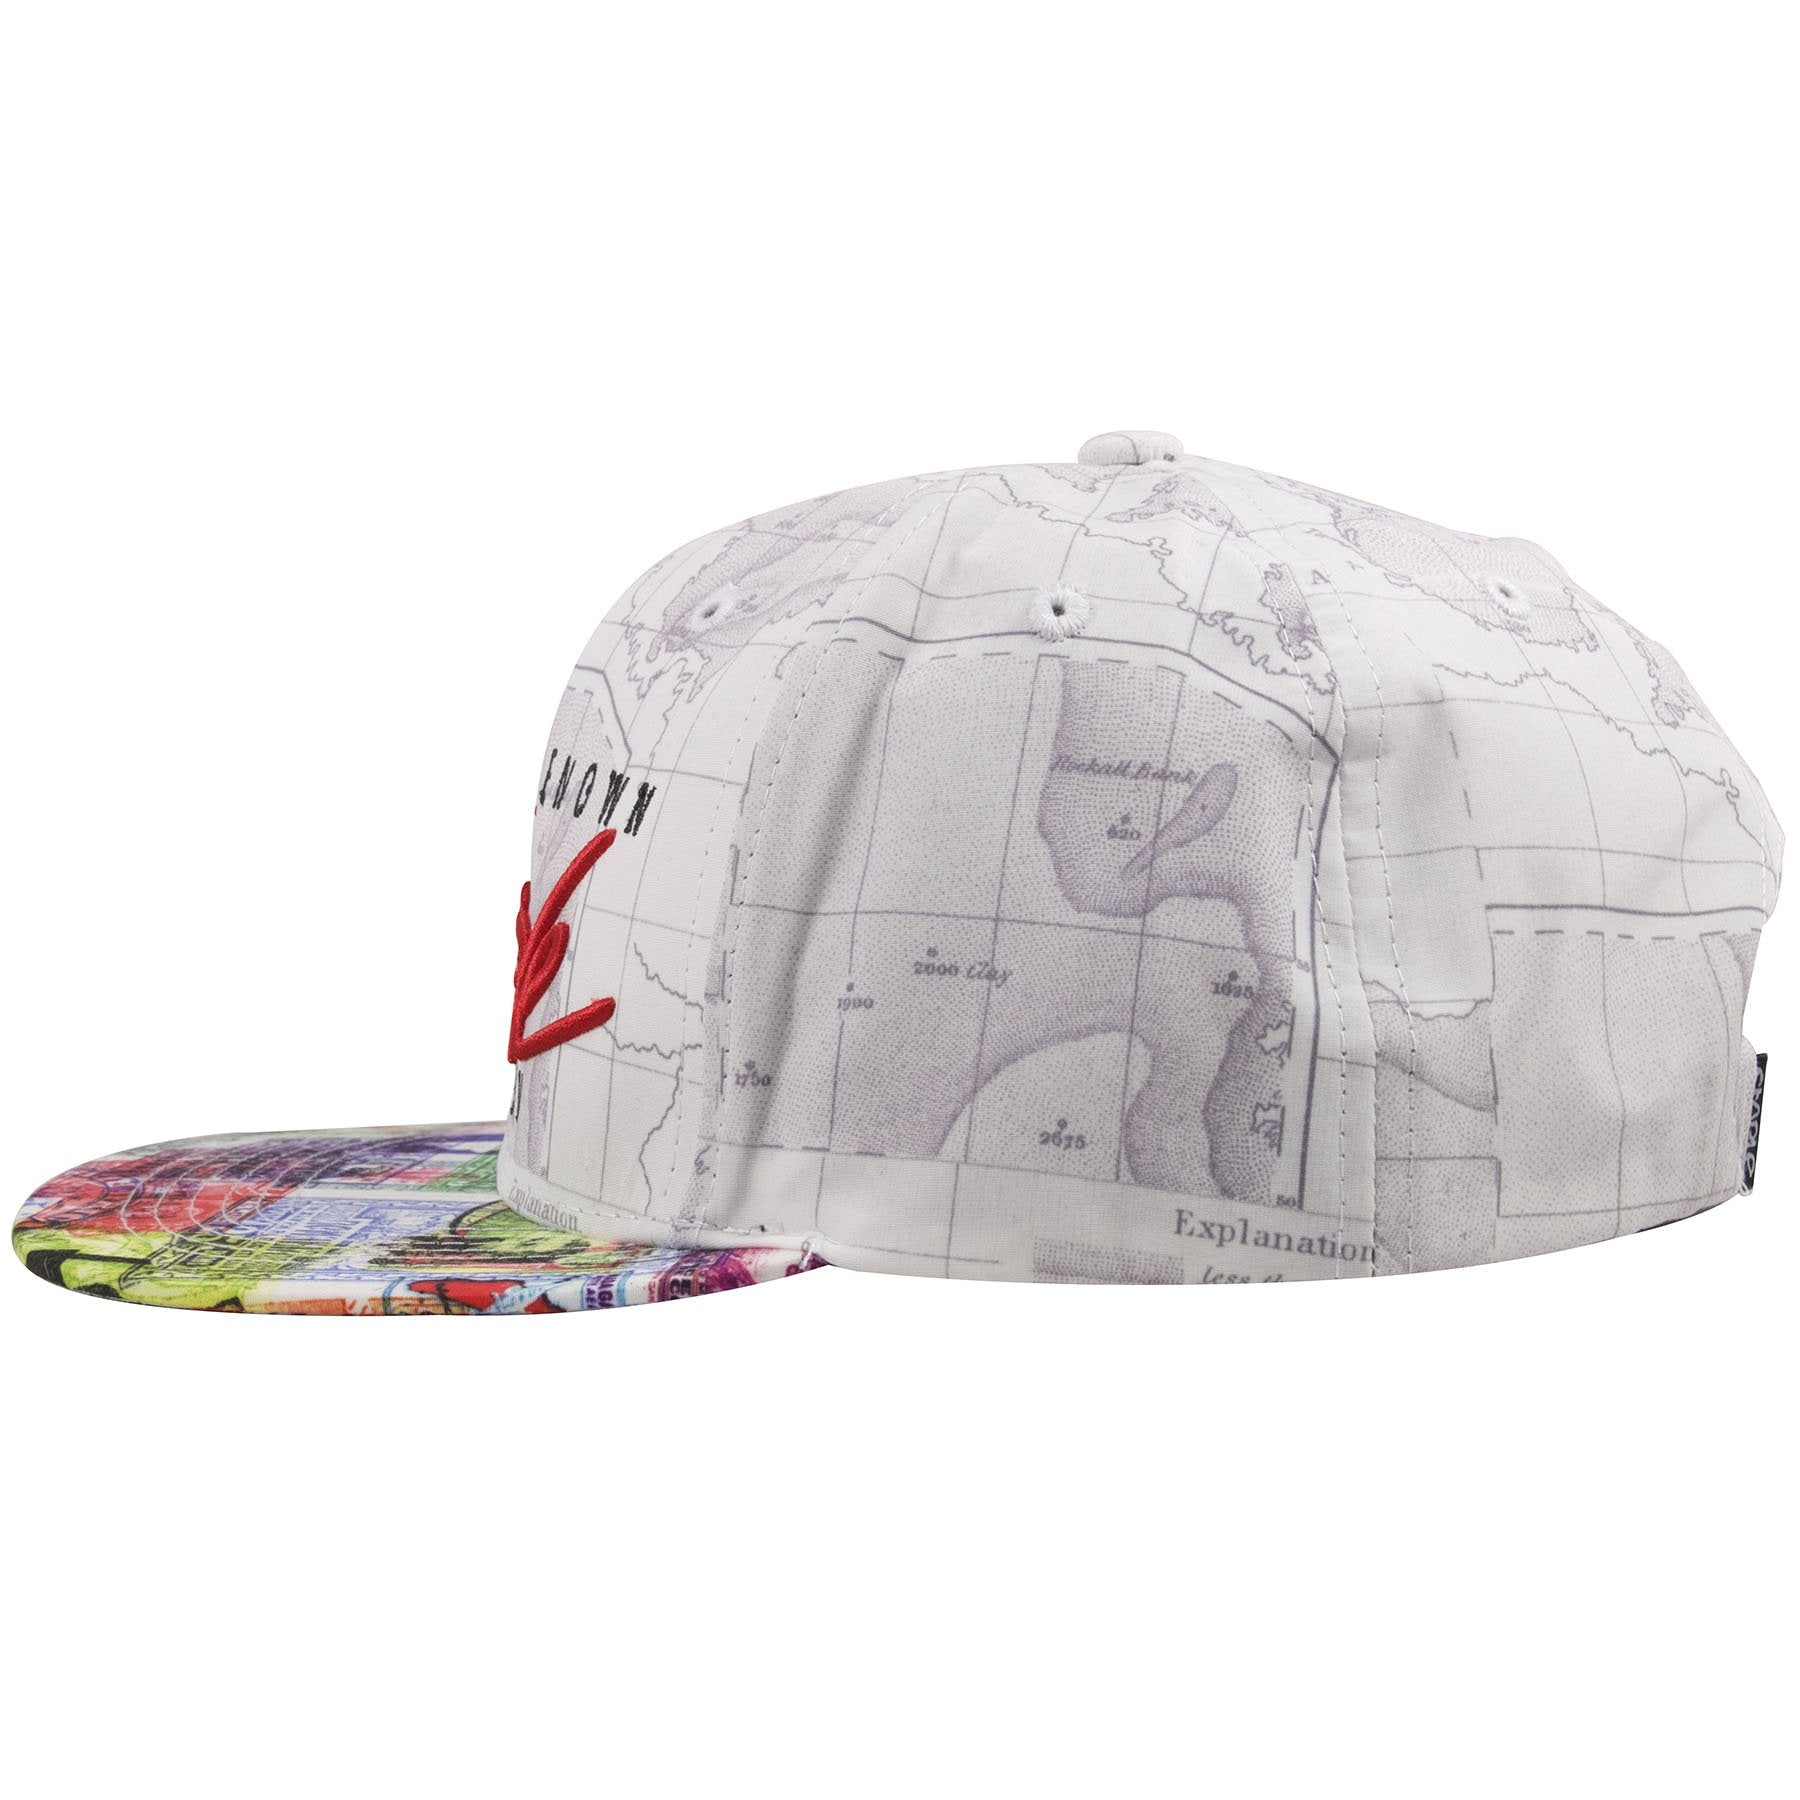 c7ca3a5bfbe ... The sides of this streetwear Staple Pigeon Hat shows a continuation of  the world map.